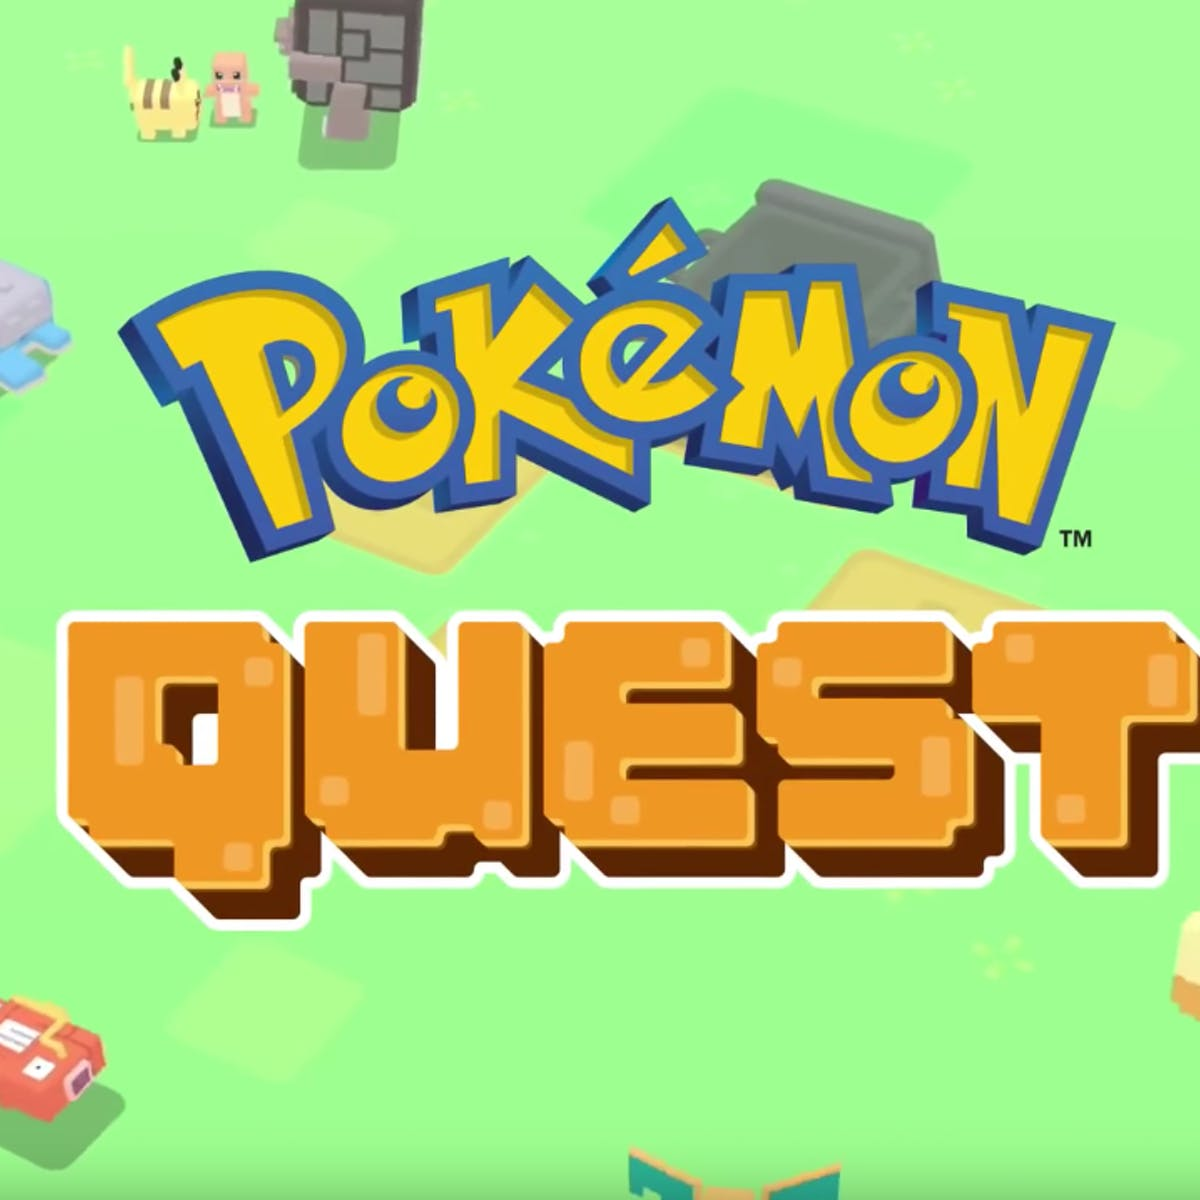 Pokemon quest recipes guide how to get all of the starter pokemon inverse